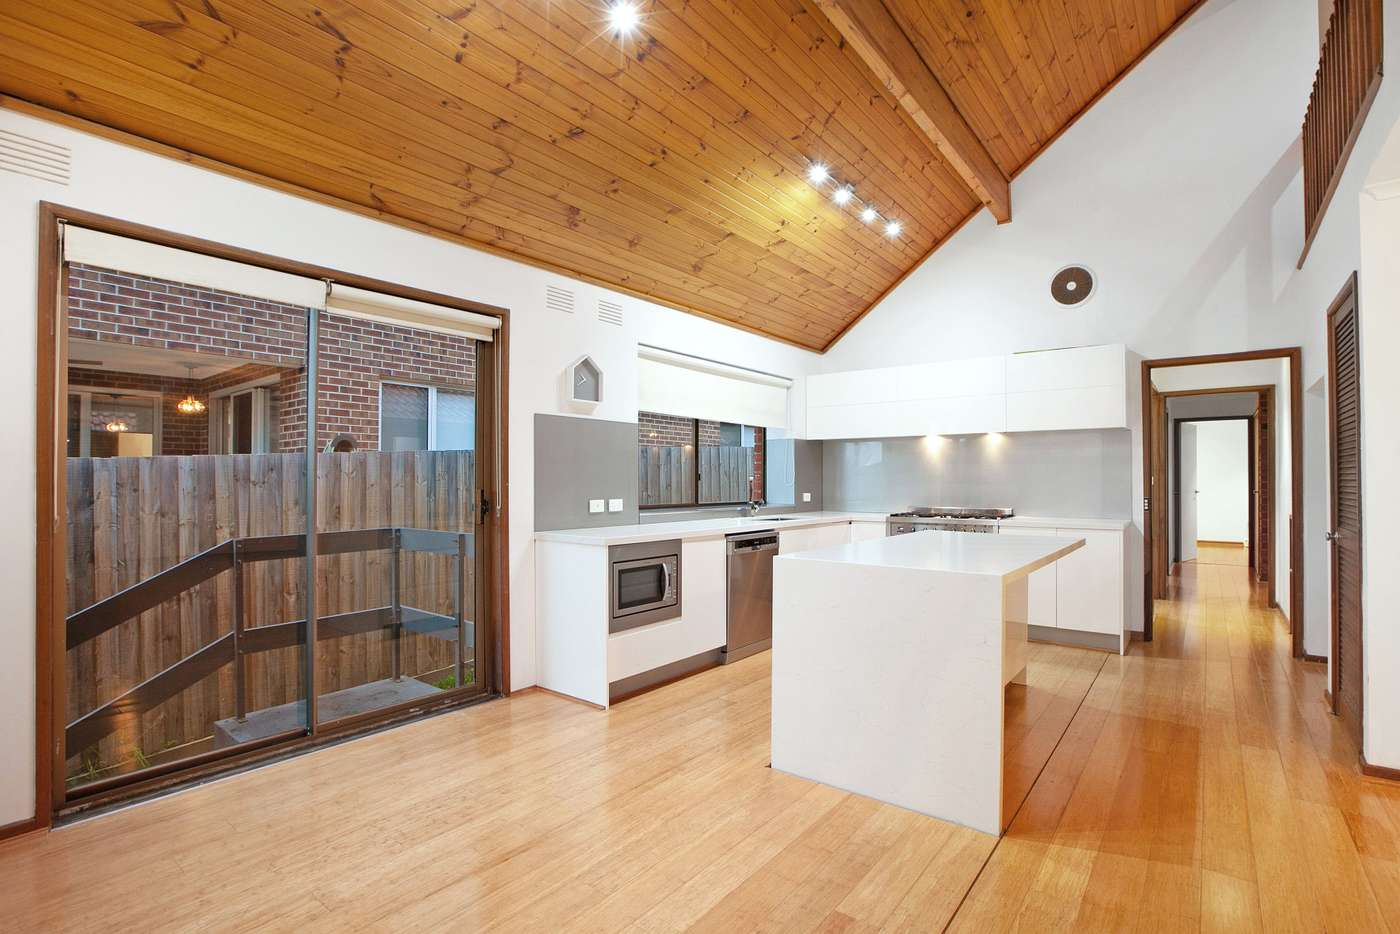 Sixth view of Homely house listing, 39 Manoel Avenue, Reservoir VIC 3073